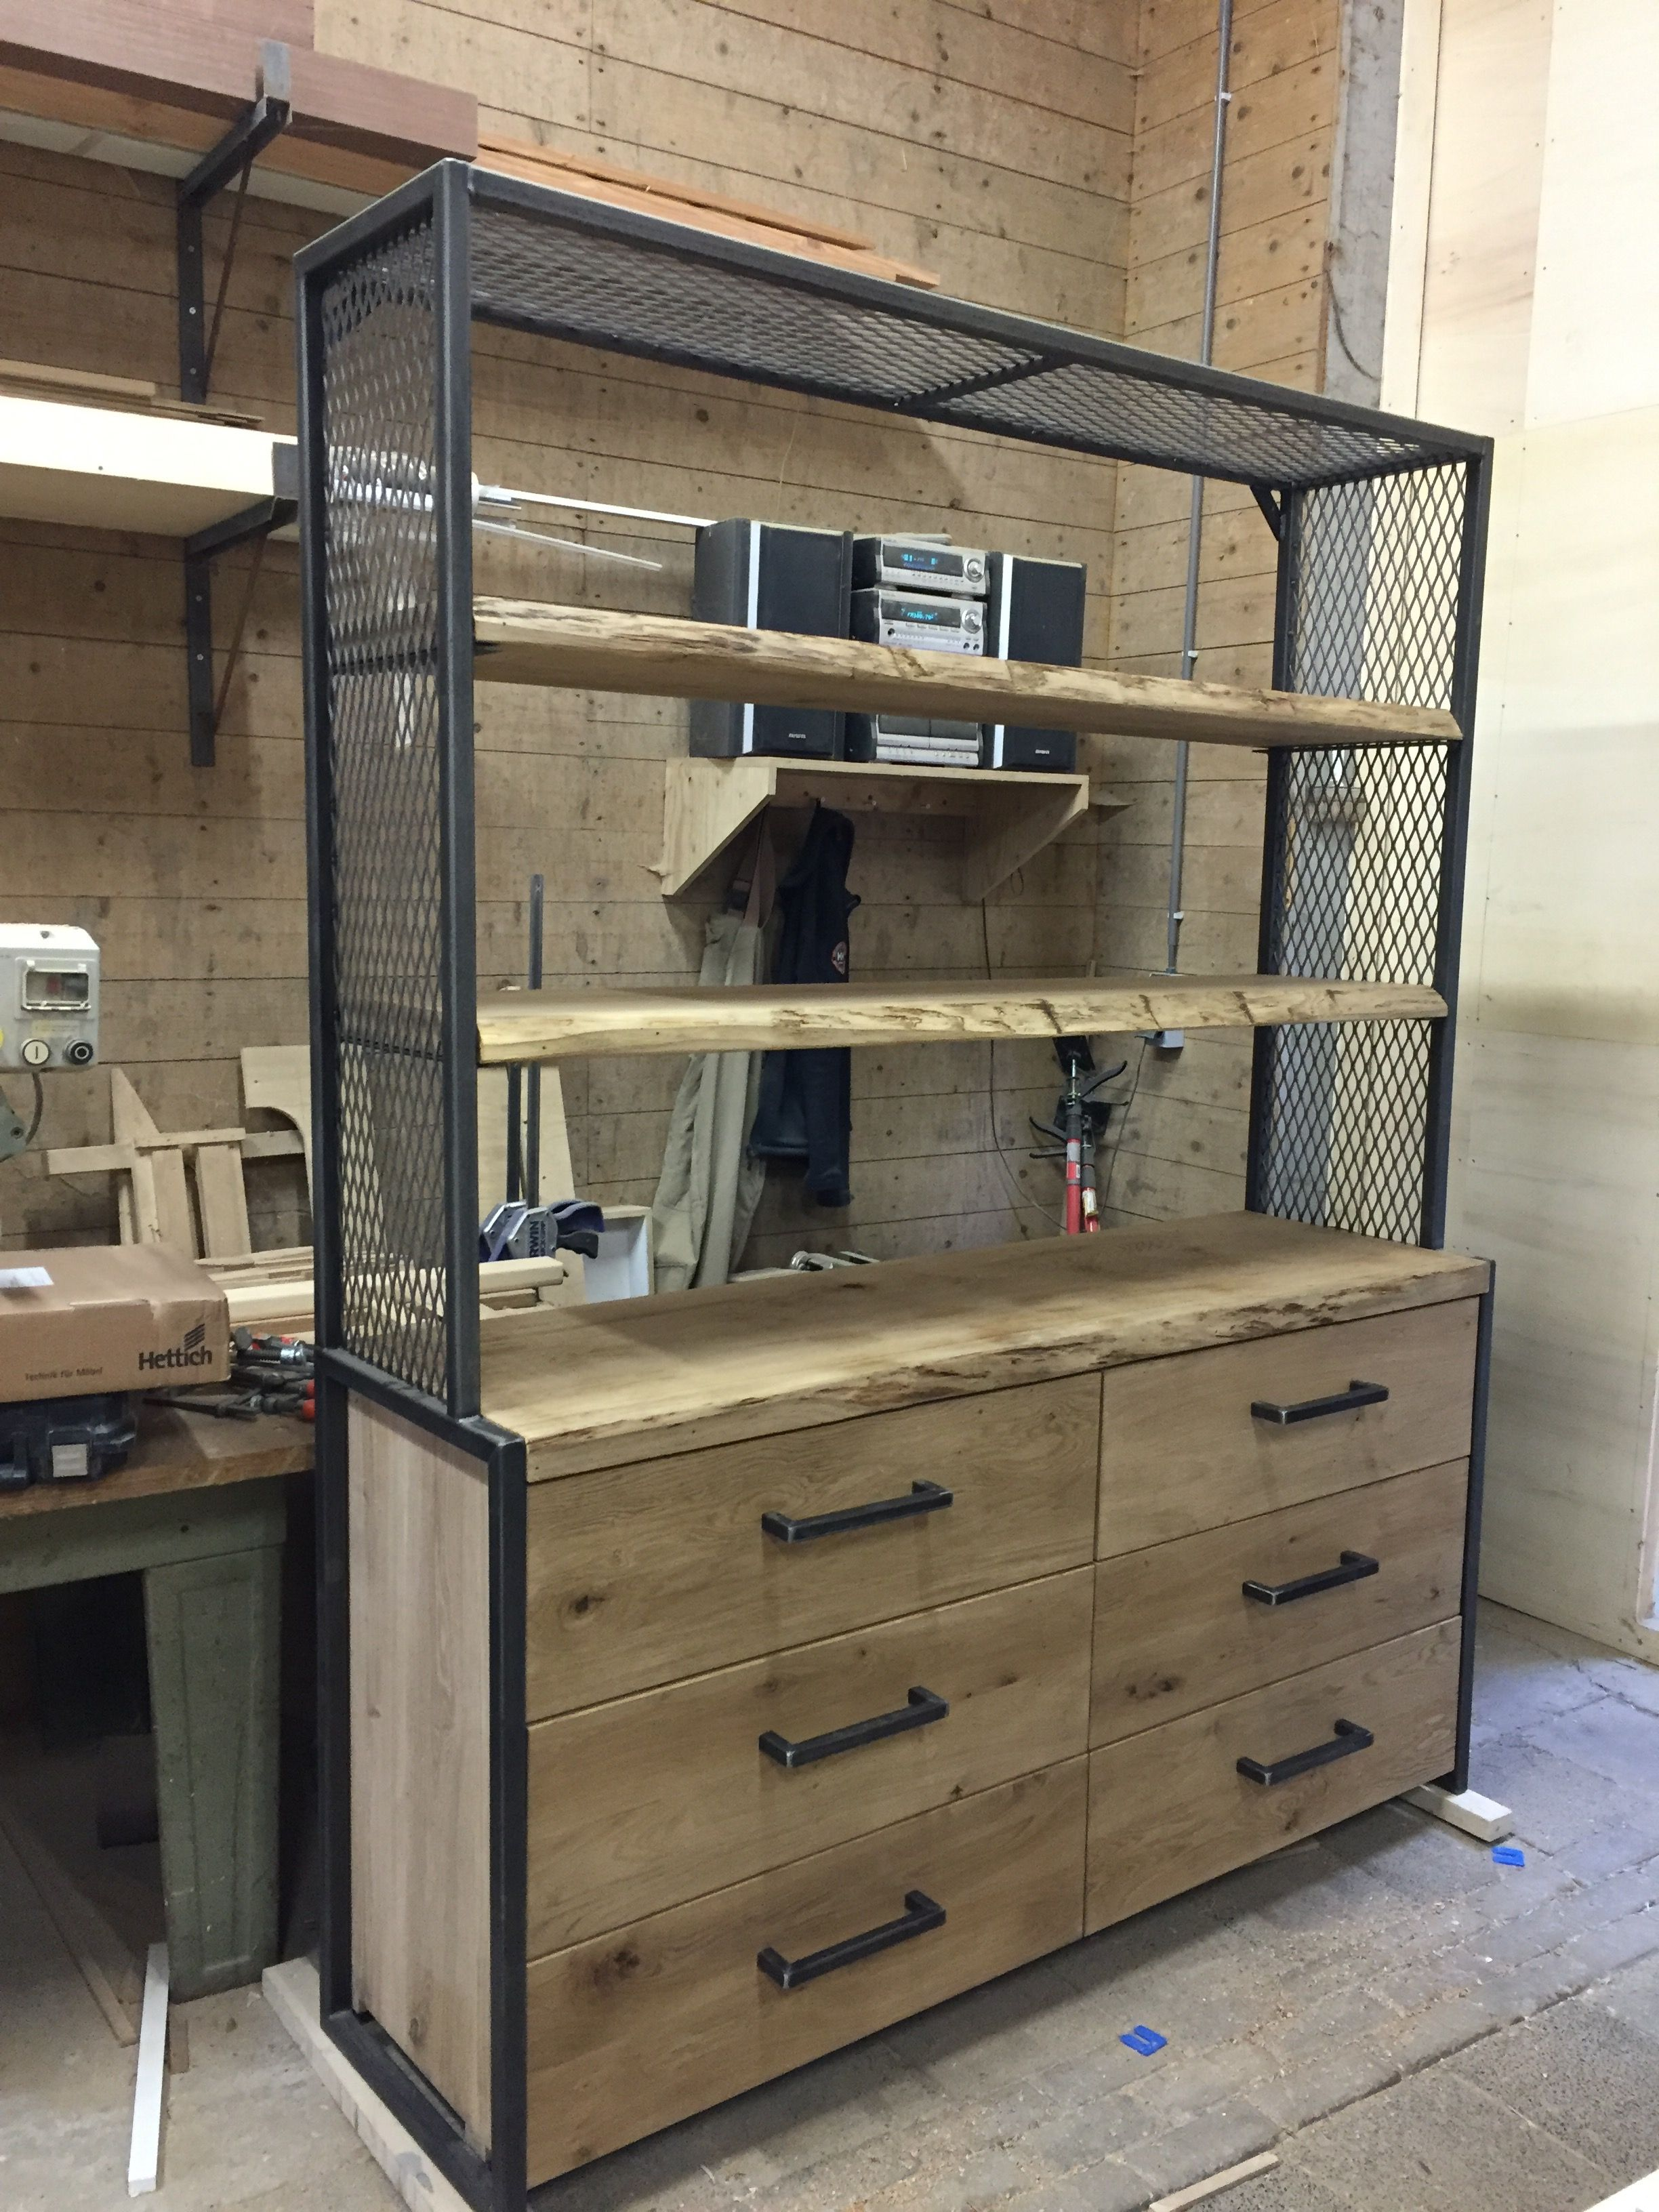 Steelwork Nl Furniture And Accessories In 2018 Pinterest